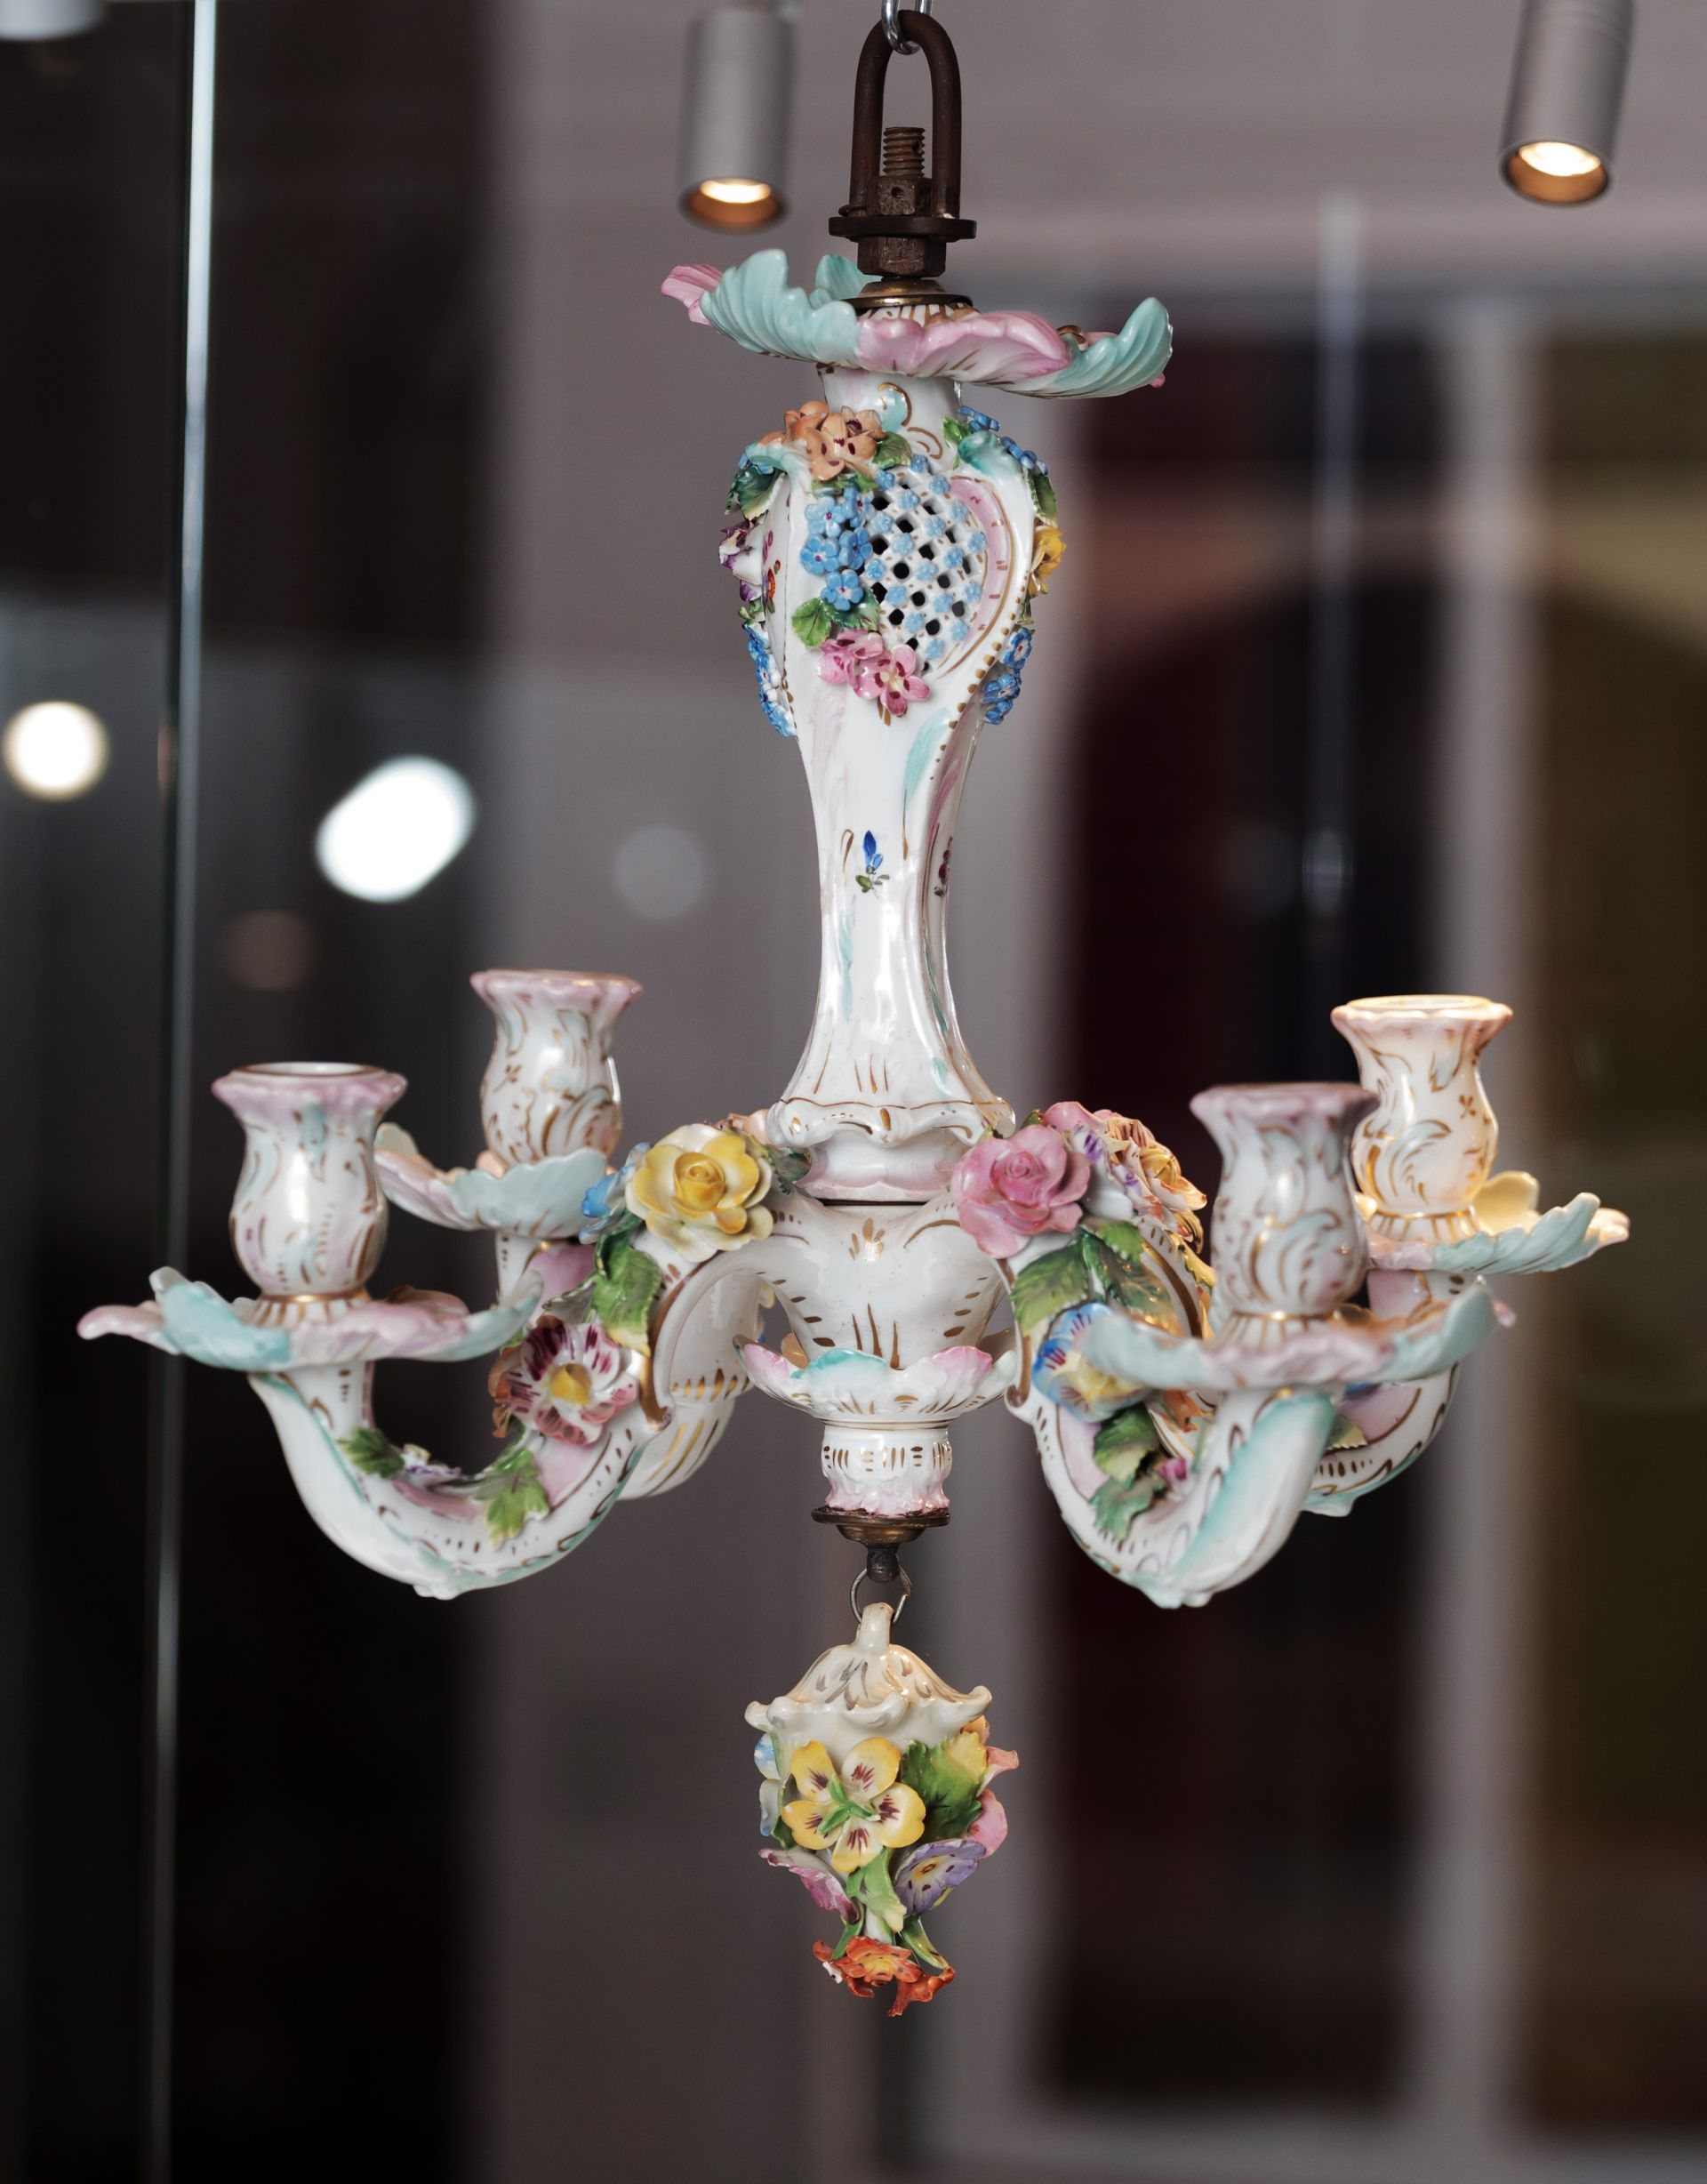 Chandelier, 1850–1899, Lithuanian National Museum of Art, TK-1067. Photo by Tomas Kapočius, 2017